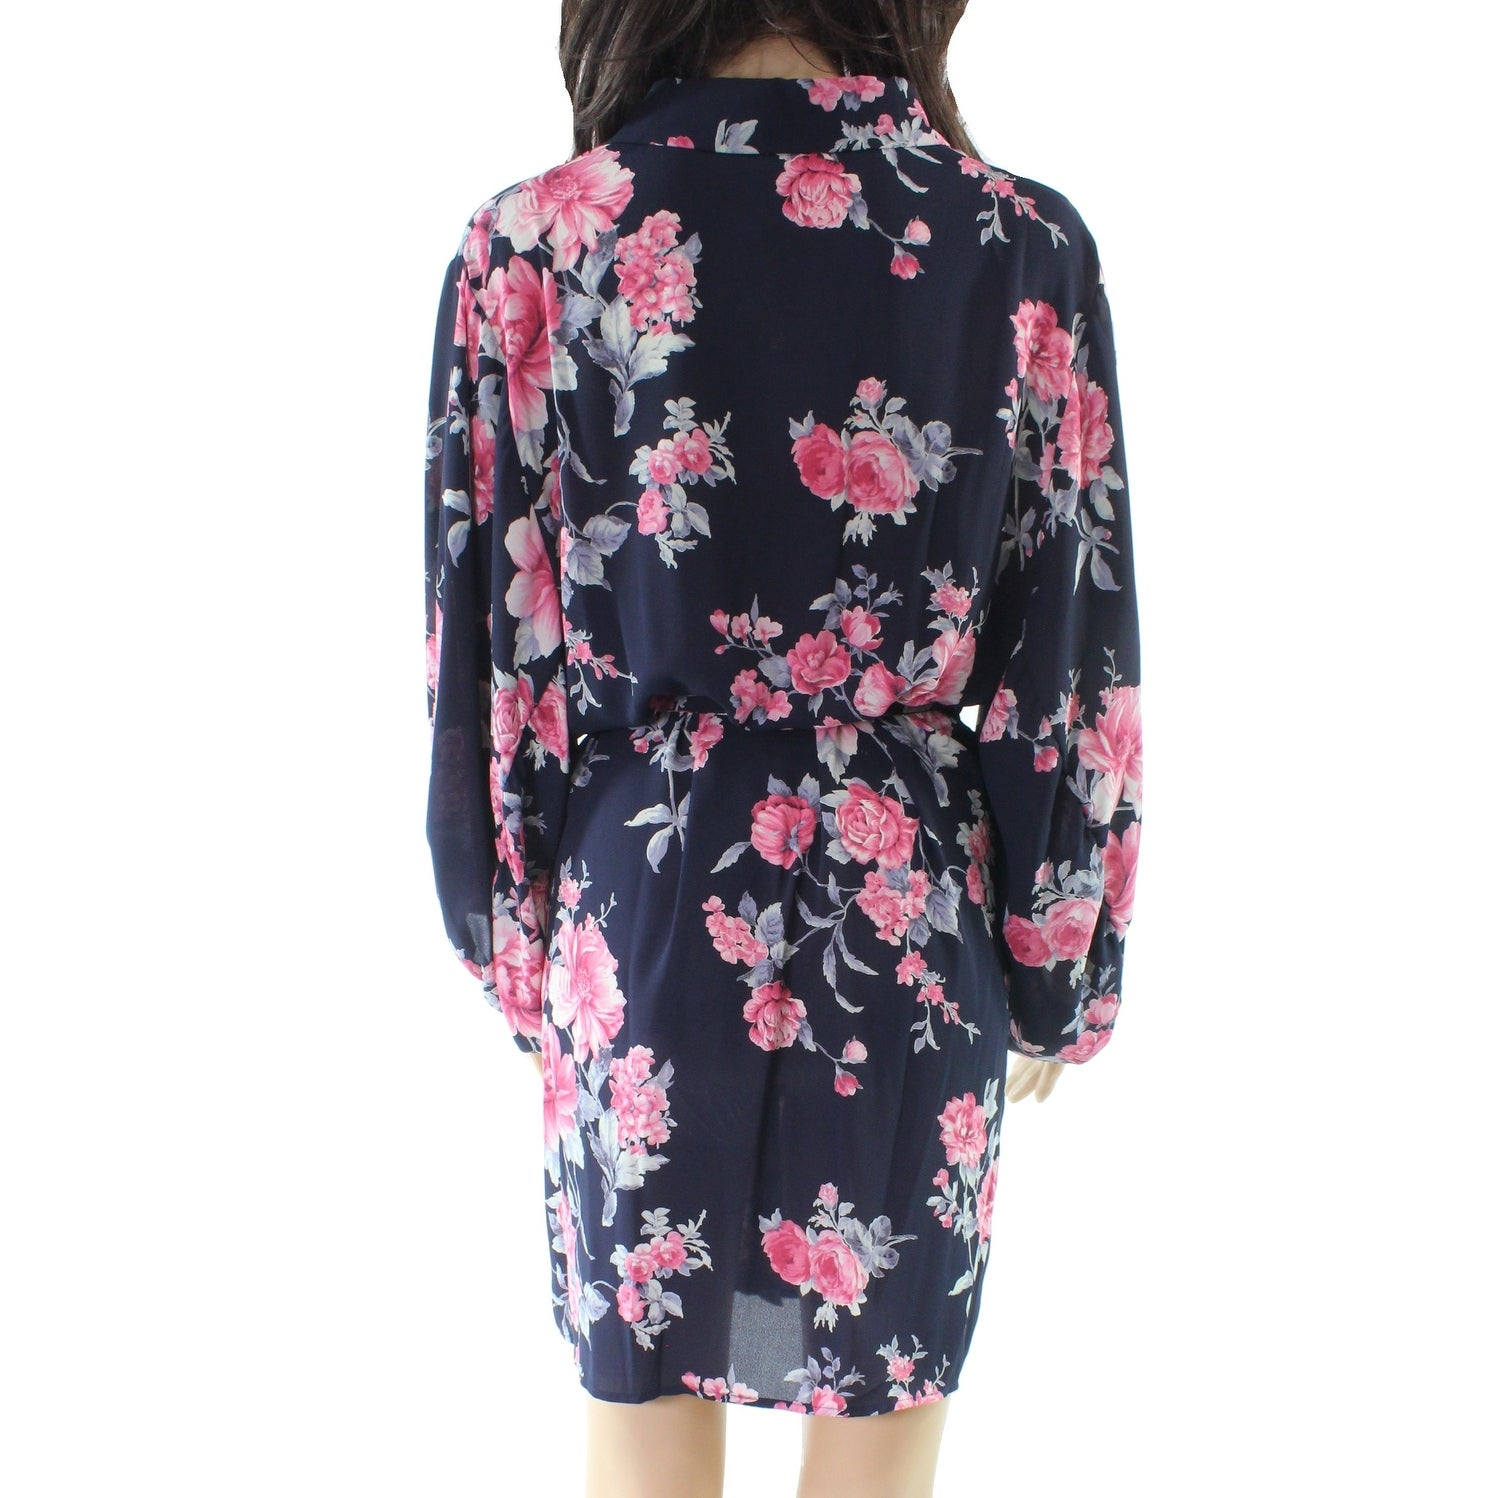 Collective Concepts NEW Blue Women s Medium M Floral Belted Shirt Dress -  Free Shipping On Orders Over  45 - Overstock - 27497396 54a801d2f26